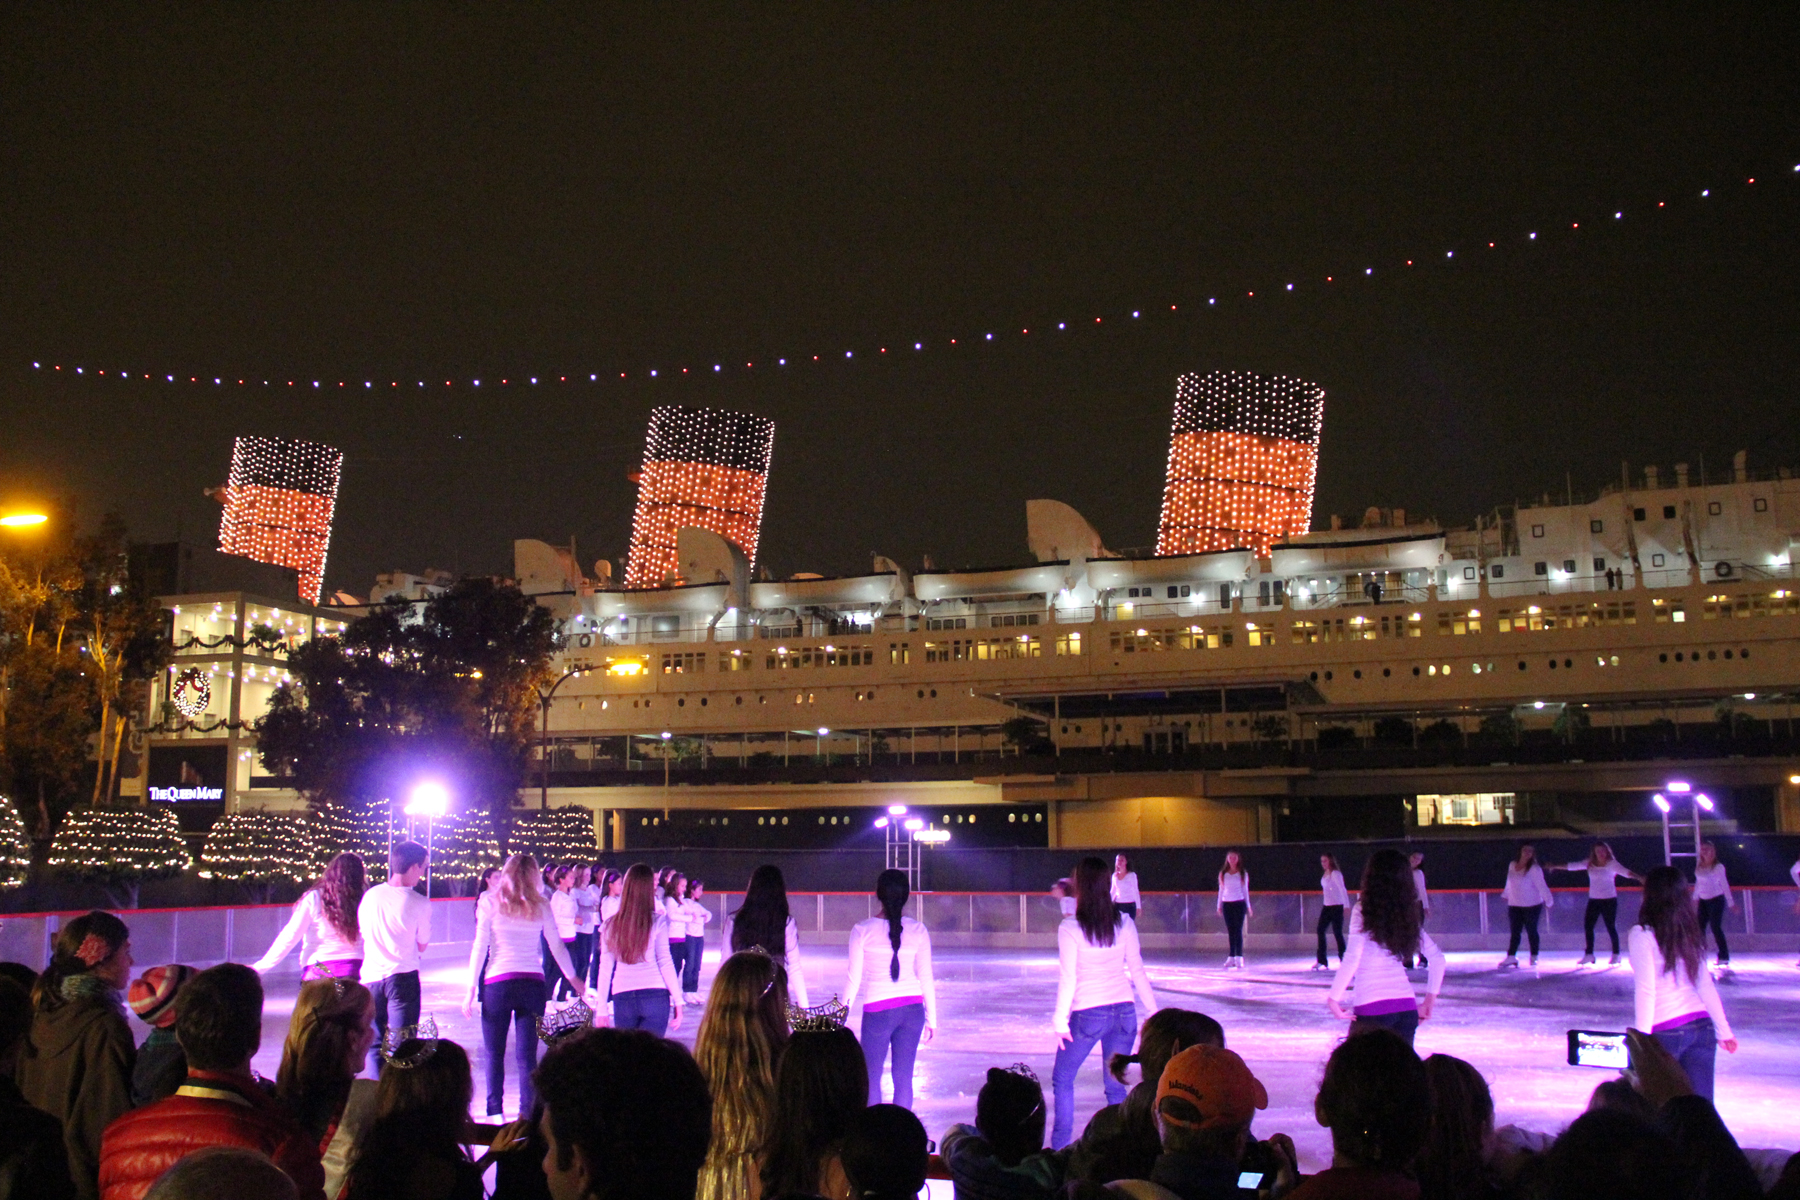 People enjoy the ice skating rink at Queen Mary's winter event: CHILL